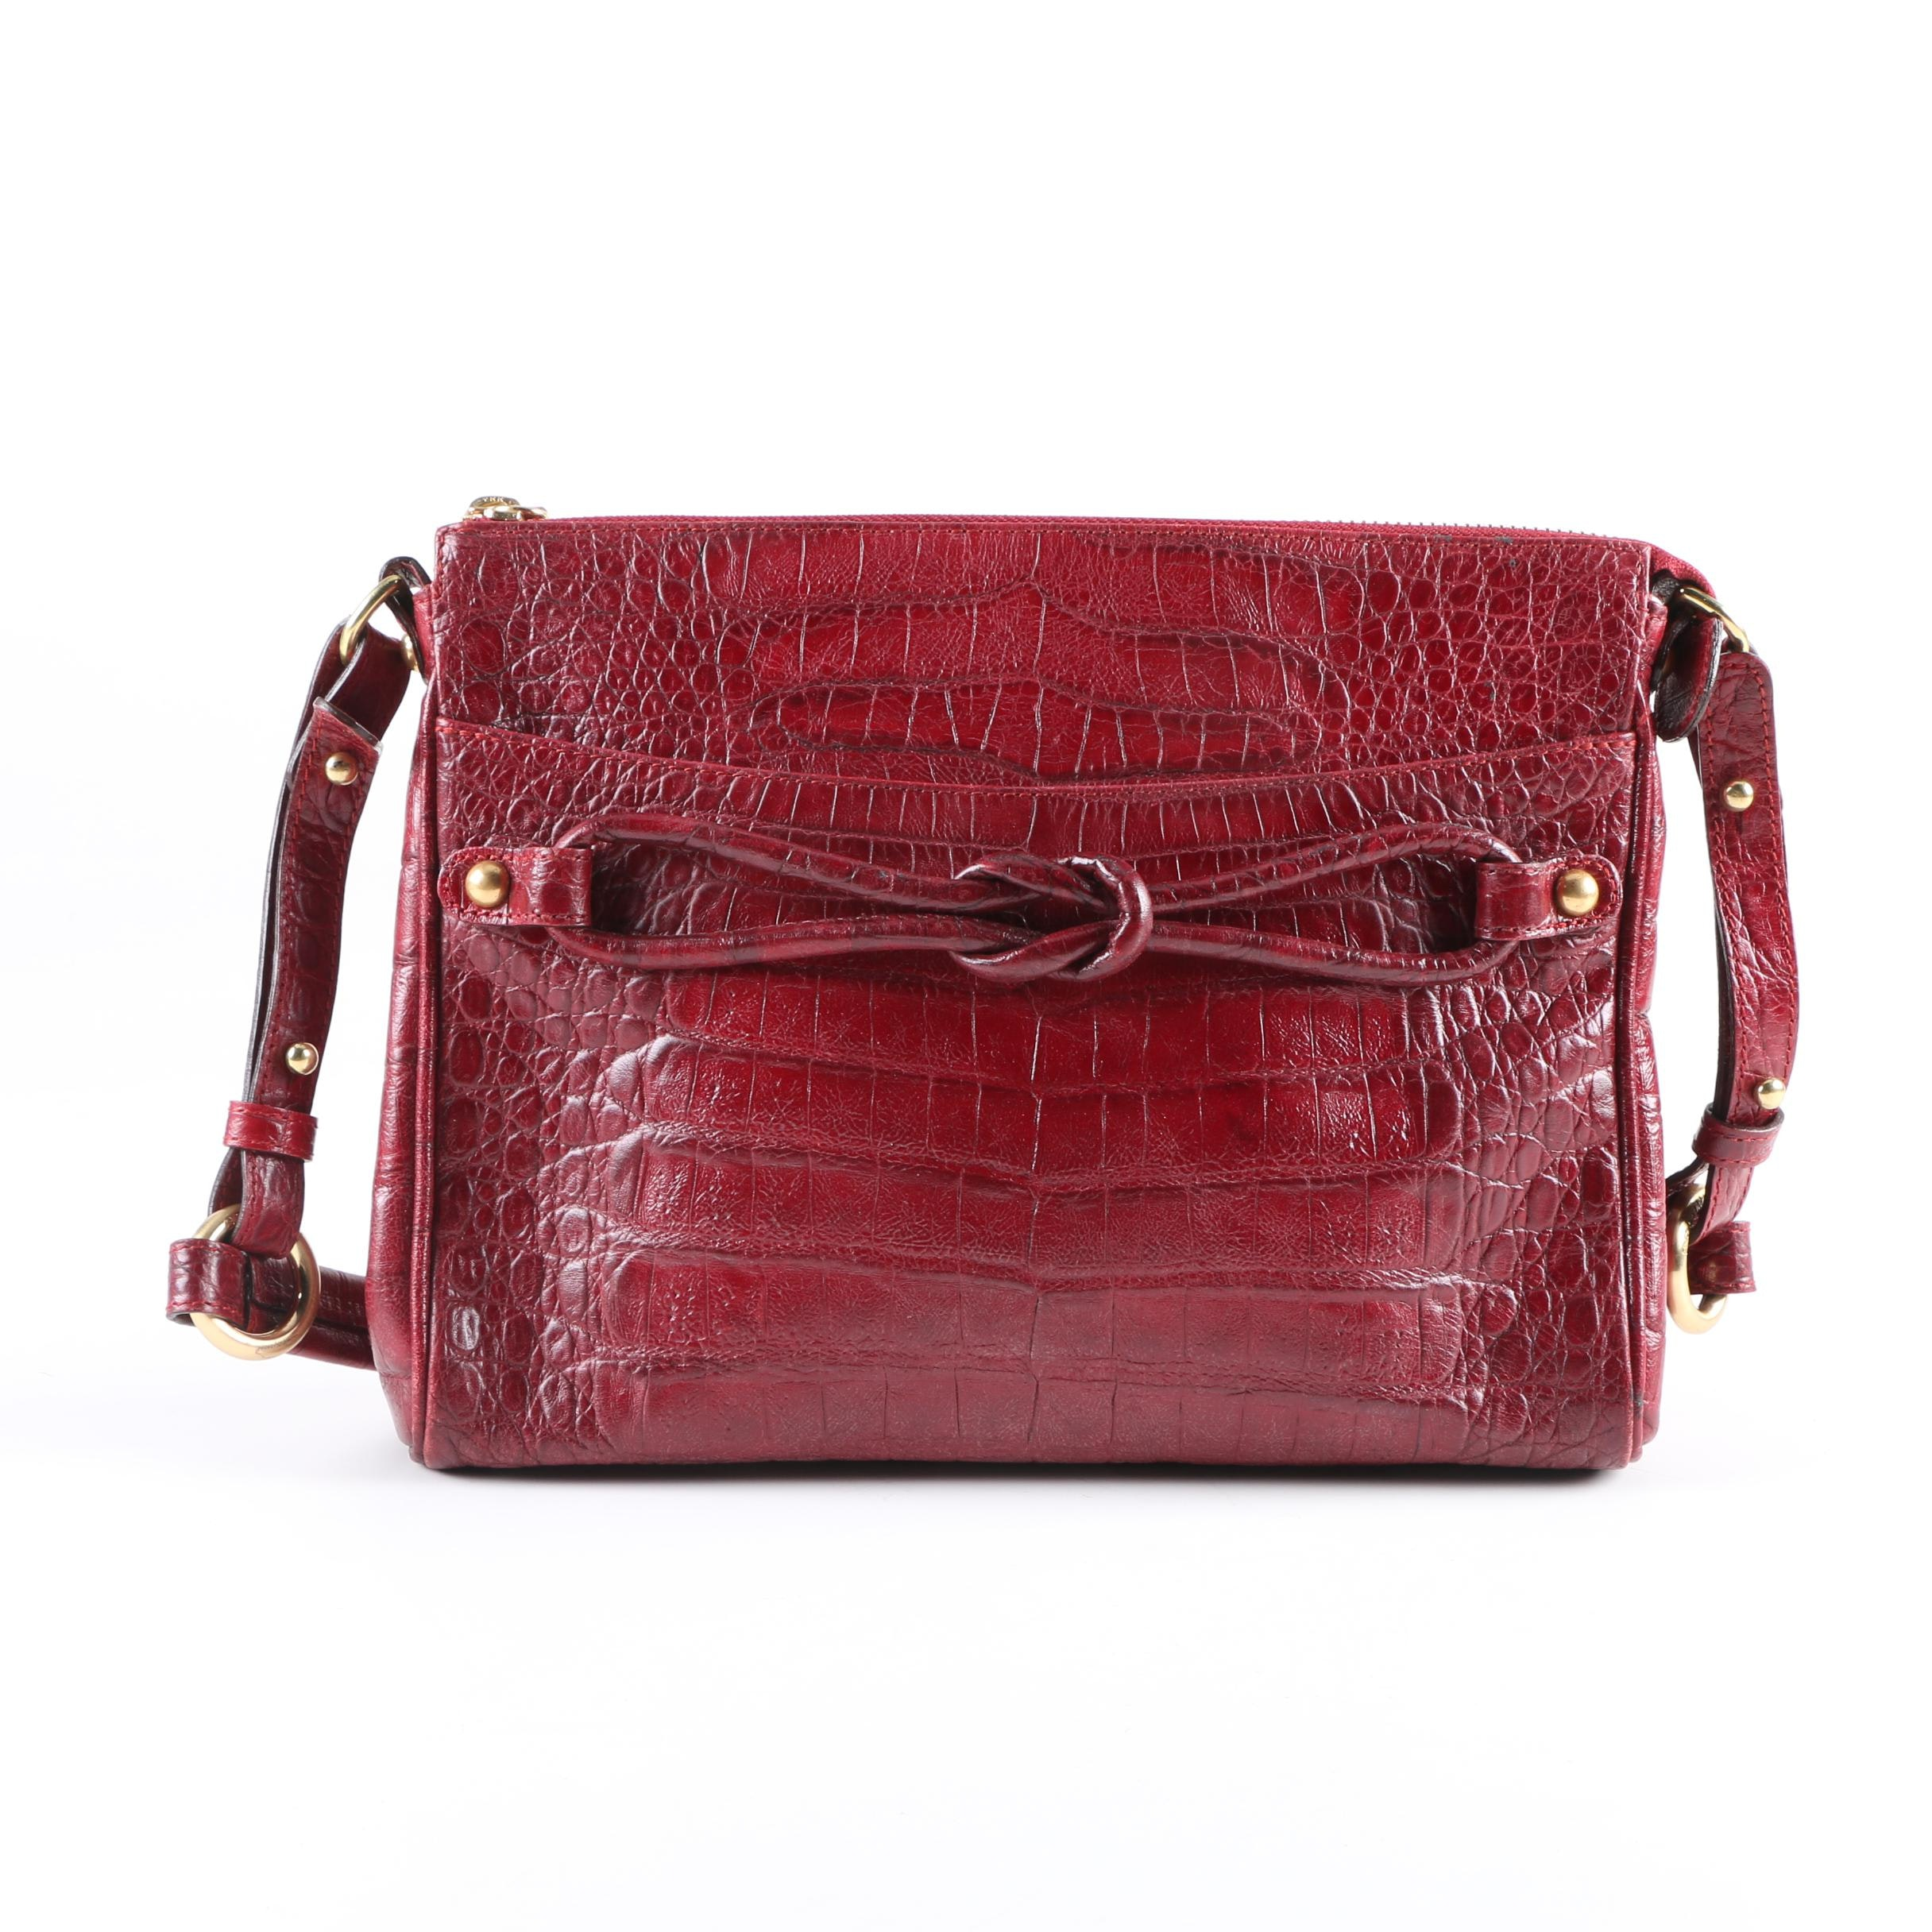 Brahmin Crocodile Embossed Red Leather Bag